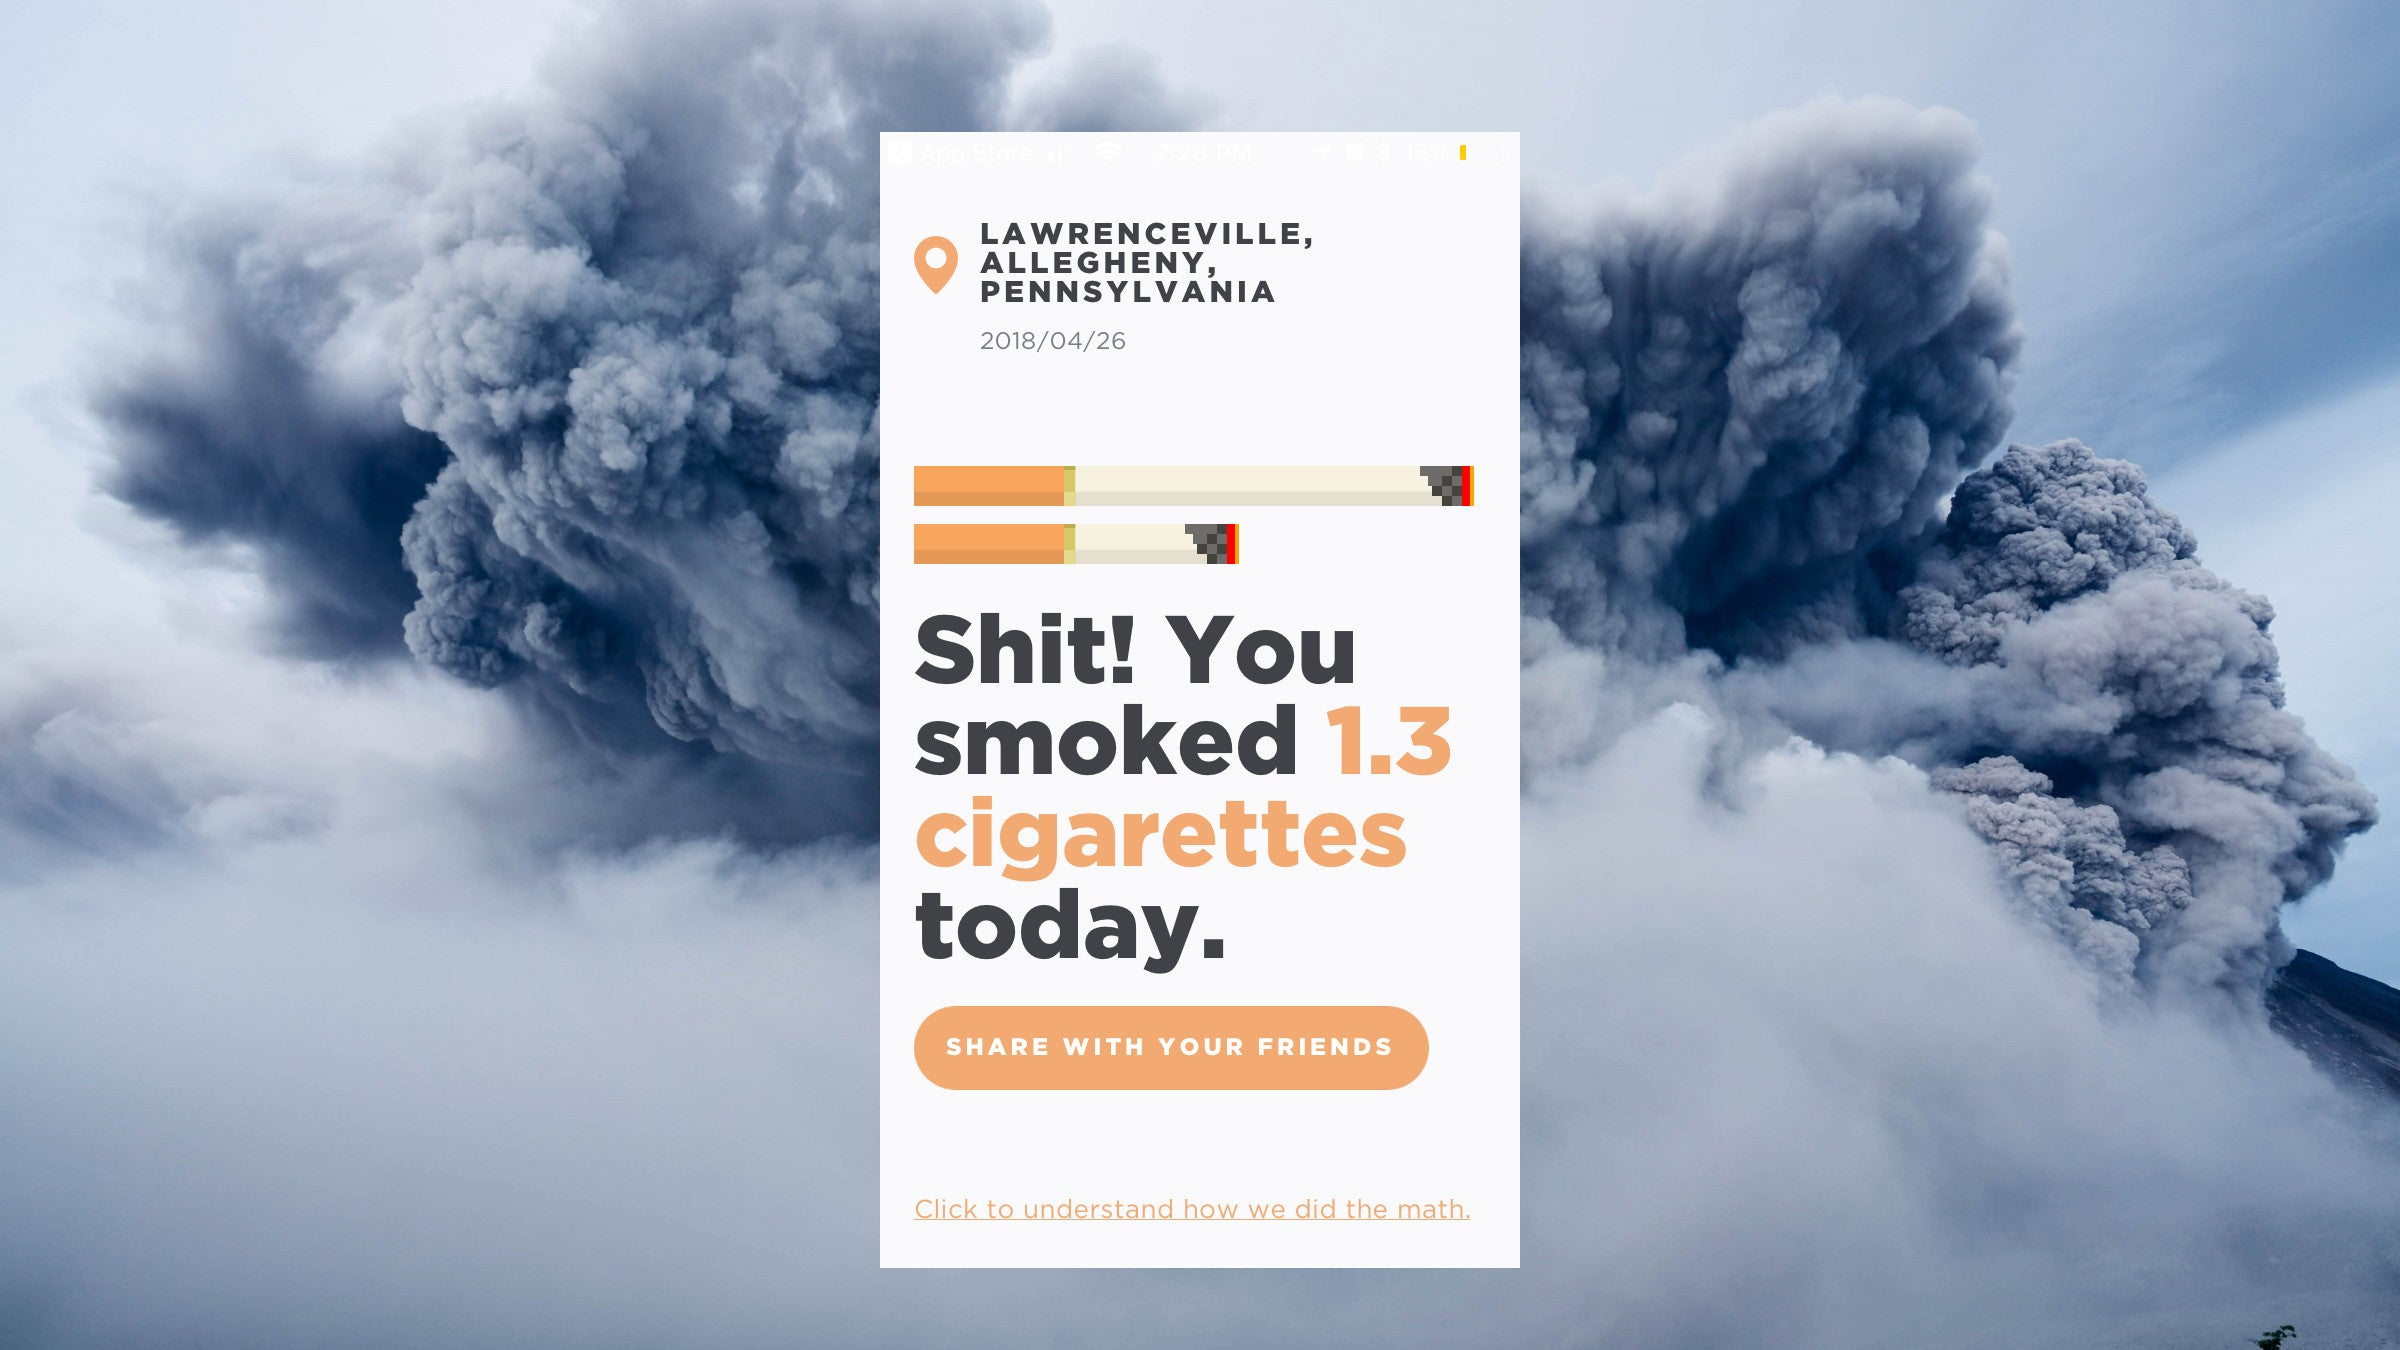 See Your City's Air Pollution Measured In Daily Cigarettes